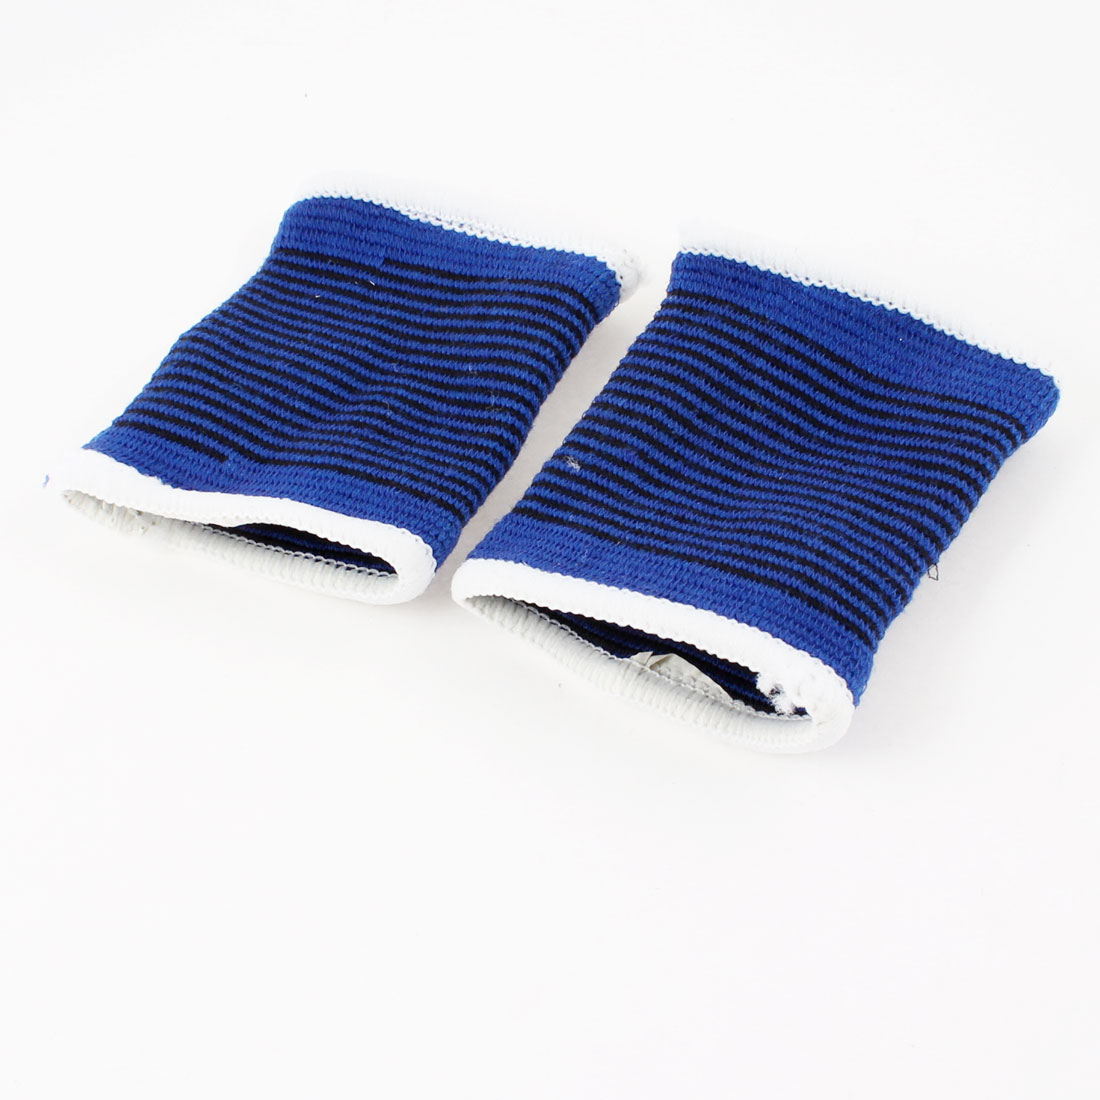 Pair Blue Black Striped White Hem Stretchy Wrist Support Brace Gear